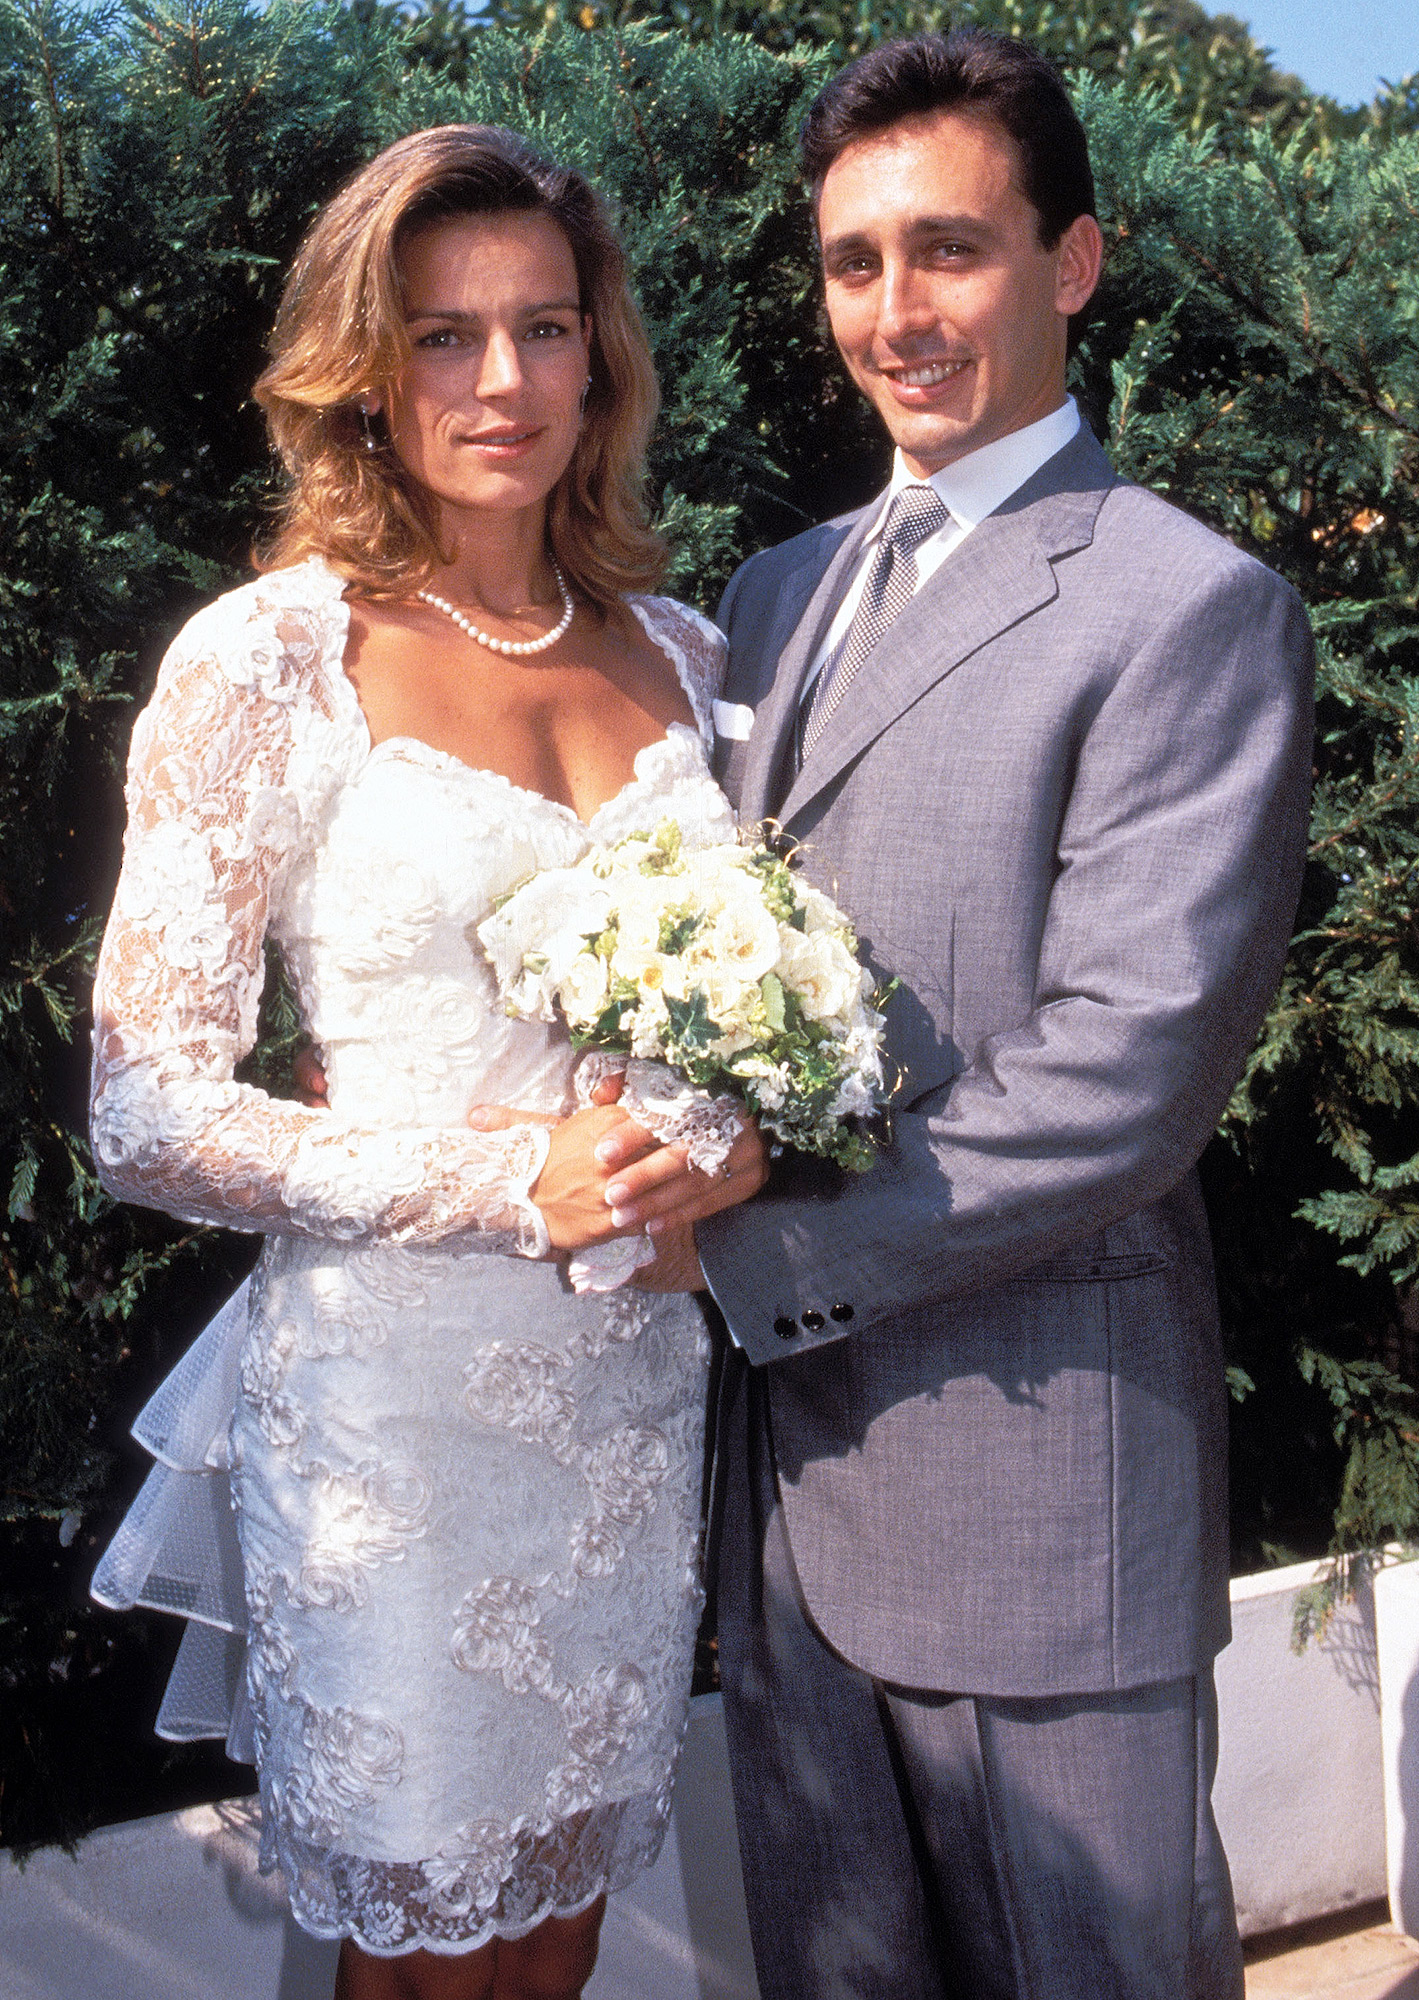 MONACO - JUNE 01: Stephanie and Daniel Ducruet's wedding In Monaco In June, 1995. (Photo by 5366/Gamma-Rapho via Getty Images)